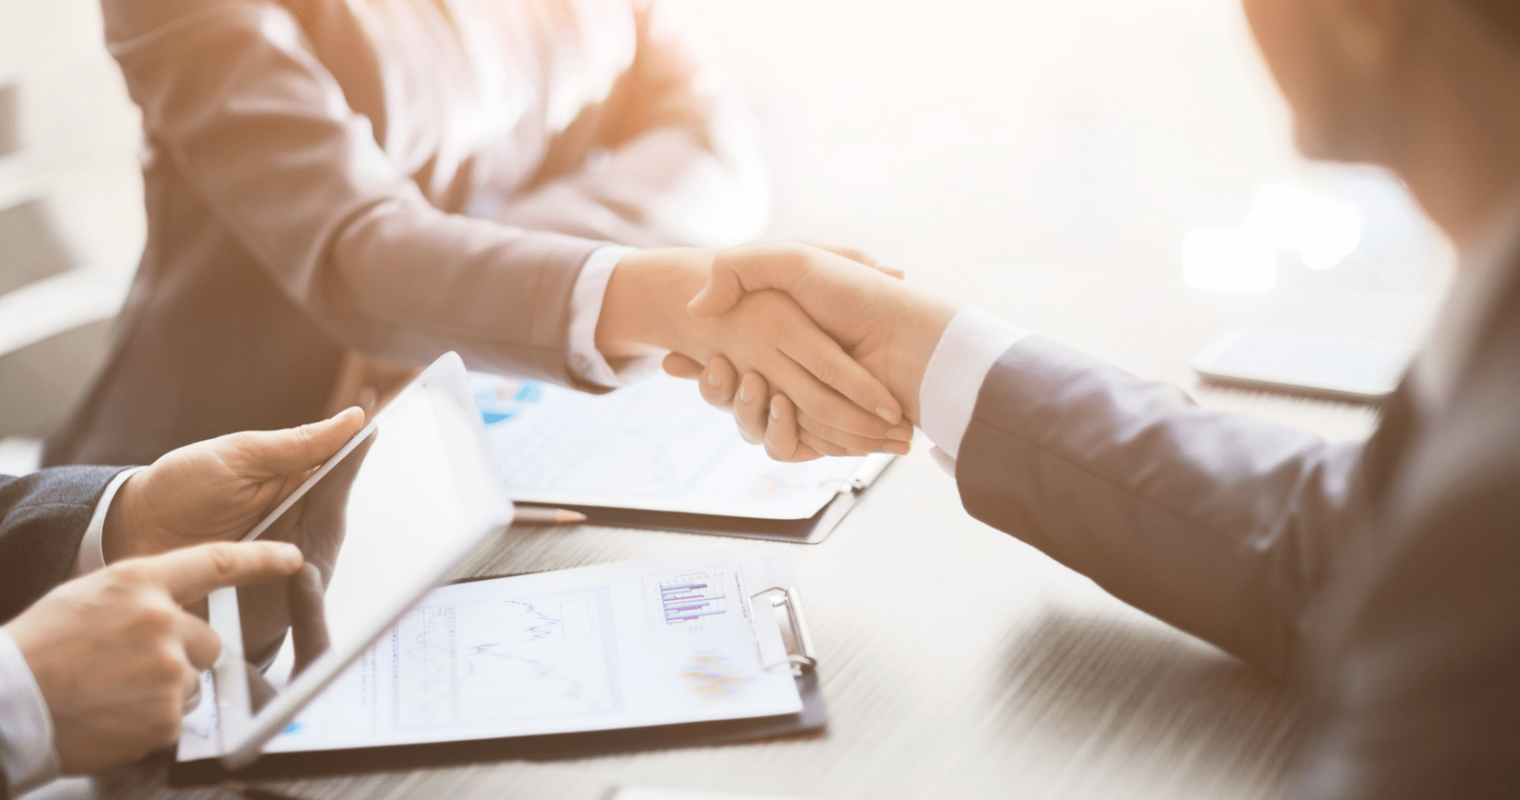 3 Steps to Help Build Trust with Clients & Execs